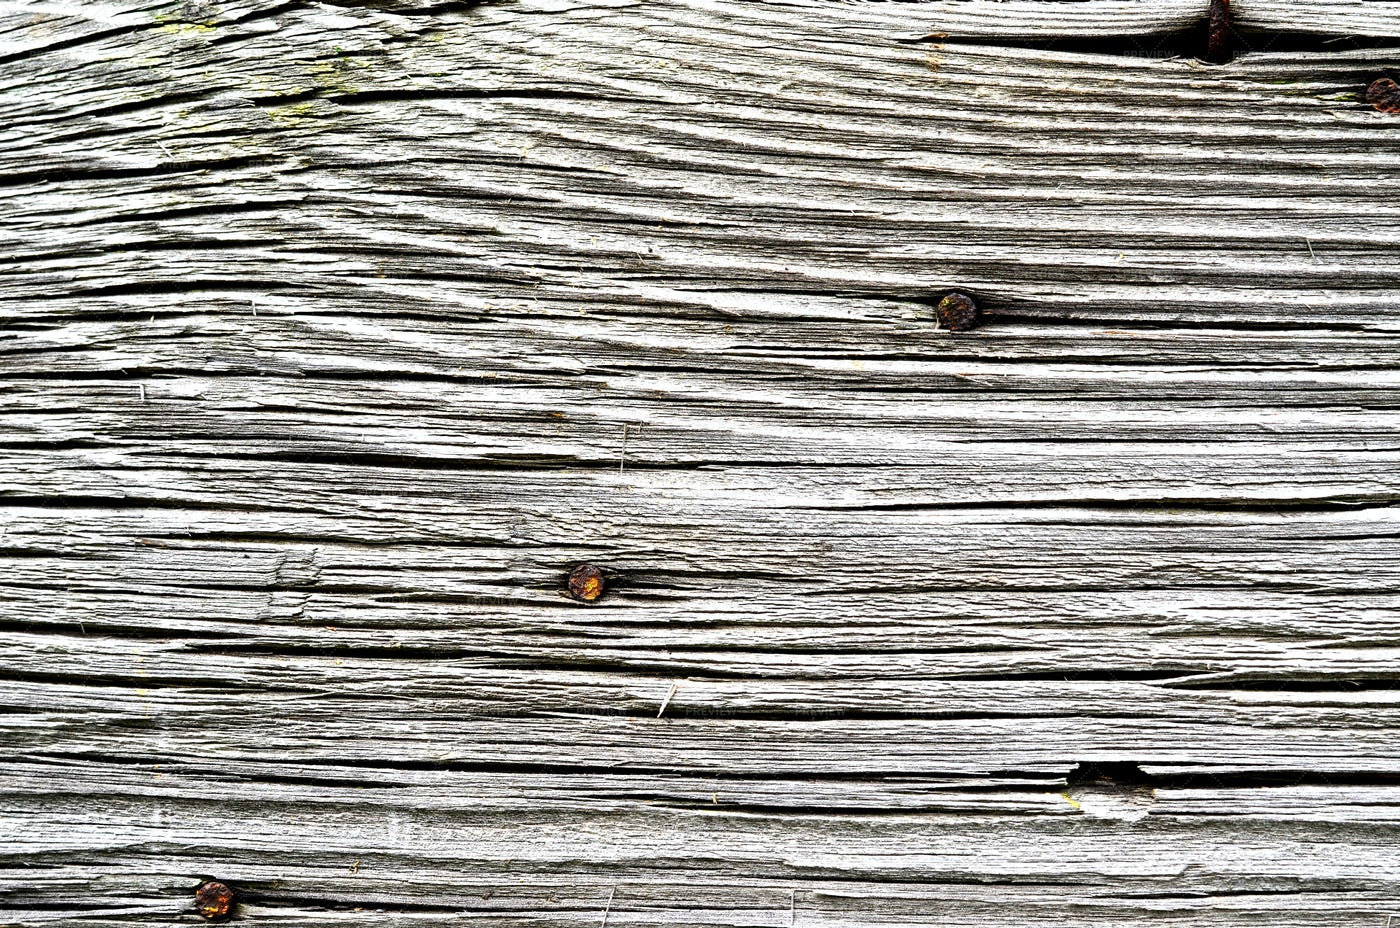 Old Board With Nails: Stock Photos